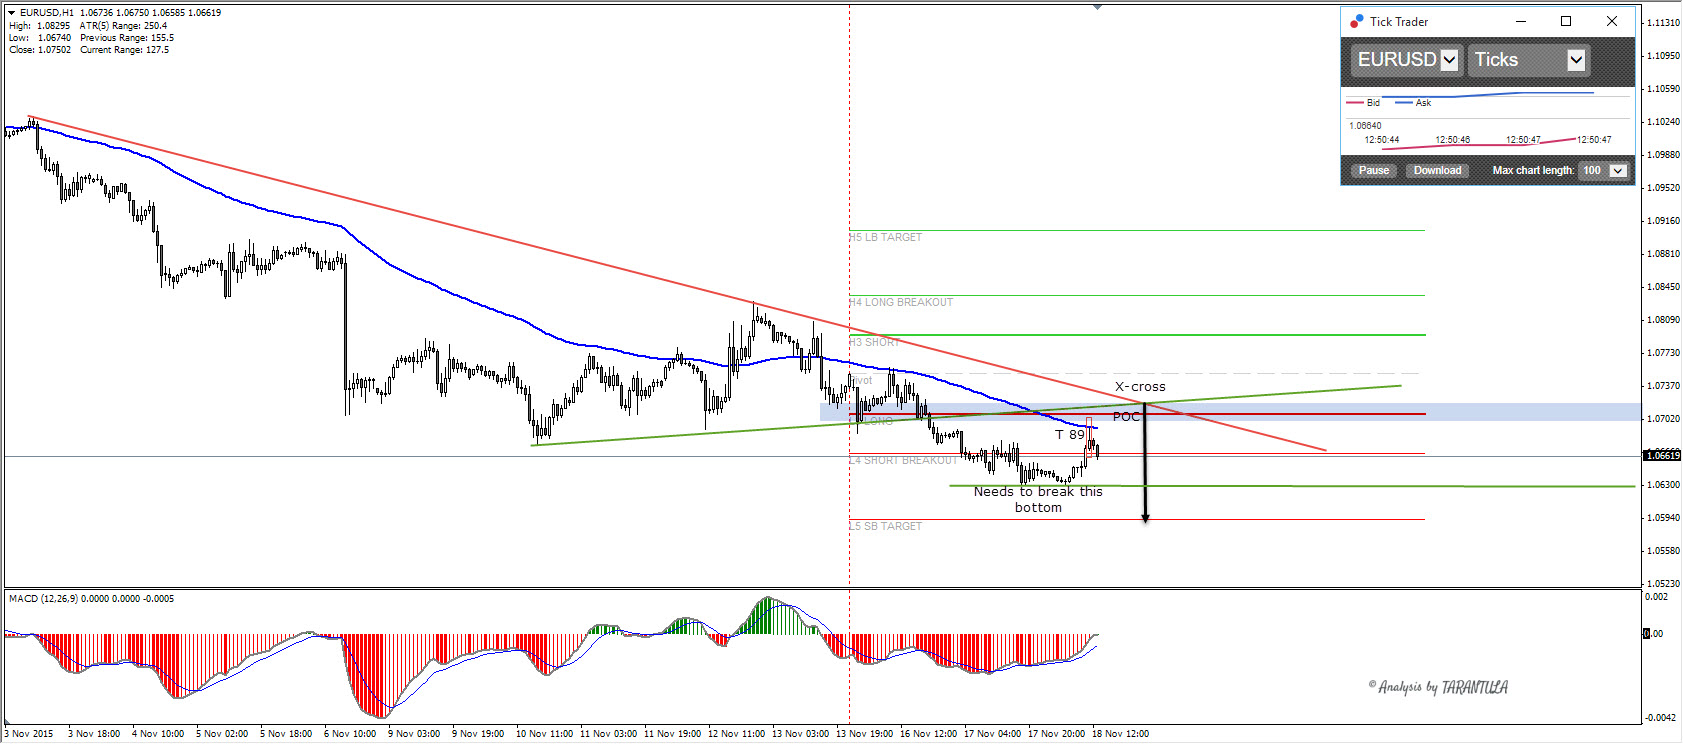 EURUSD proceeding with downtrend